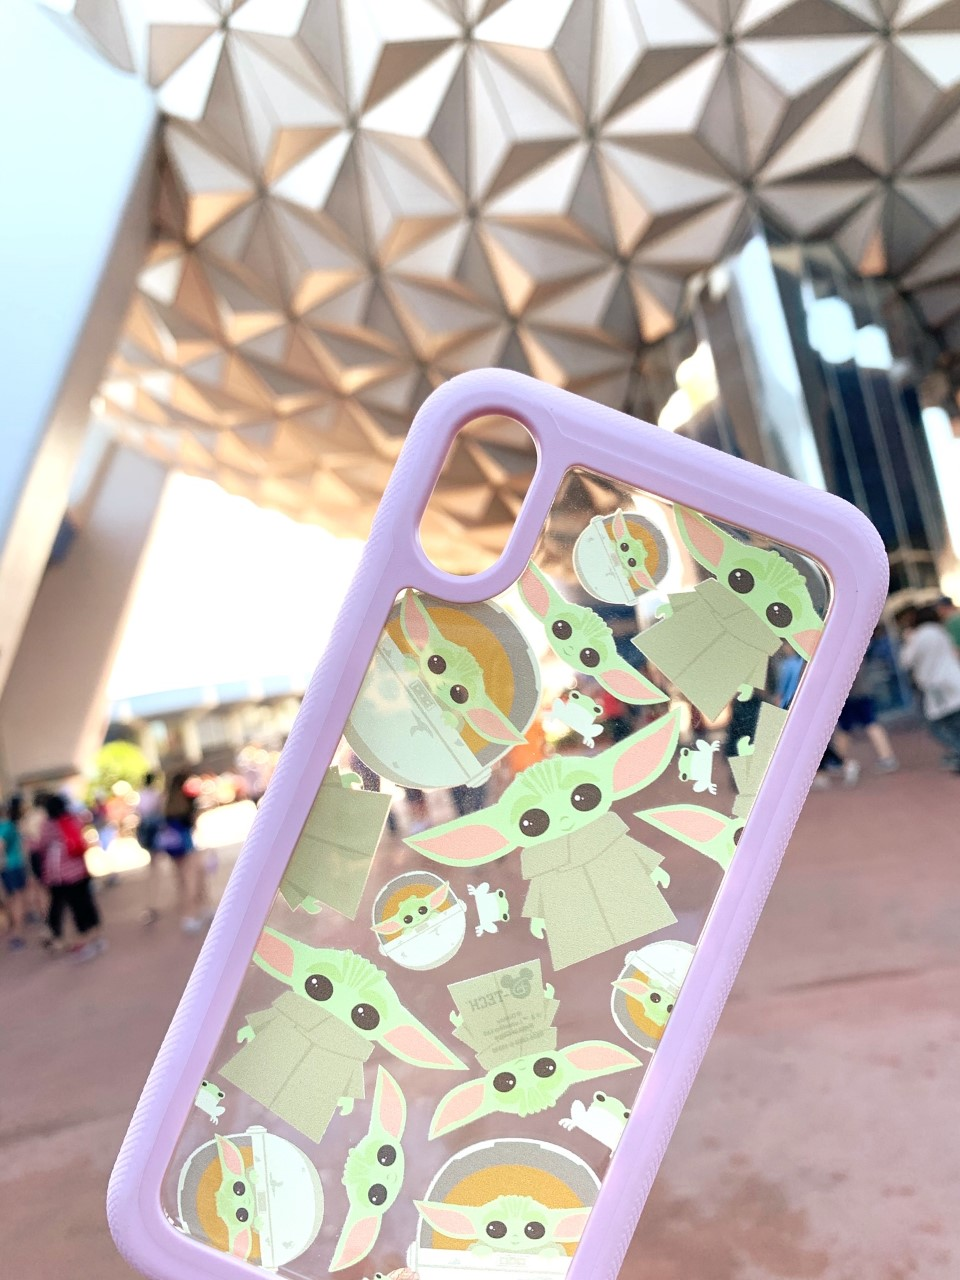 millennial pink Baby Yoda phone case Disney World